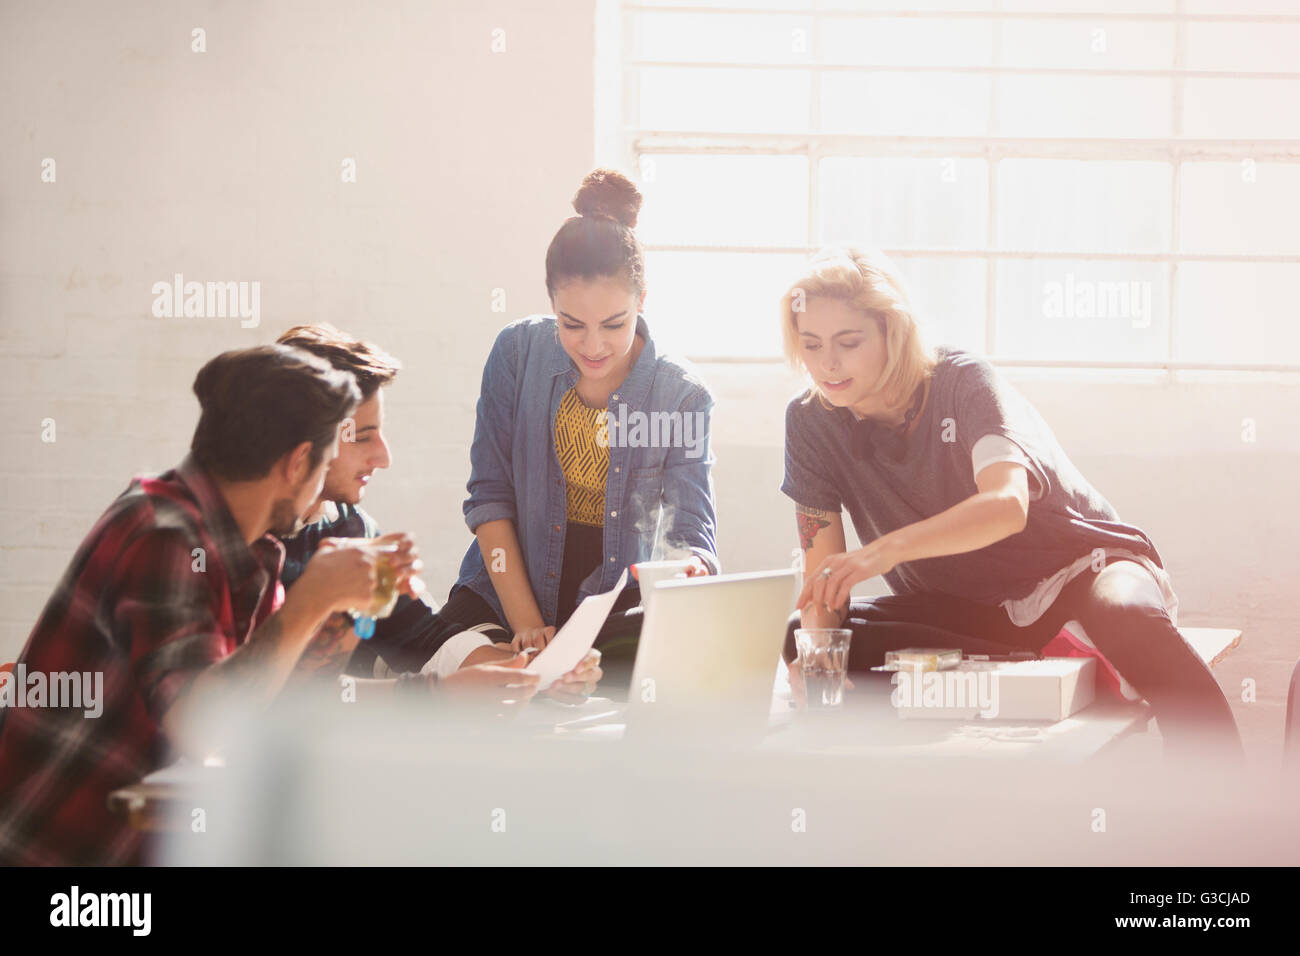 Creative young business people brainstorming at laptop in sunny office - Stock Image